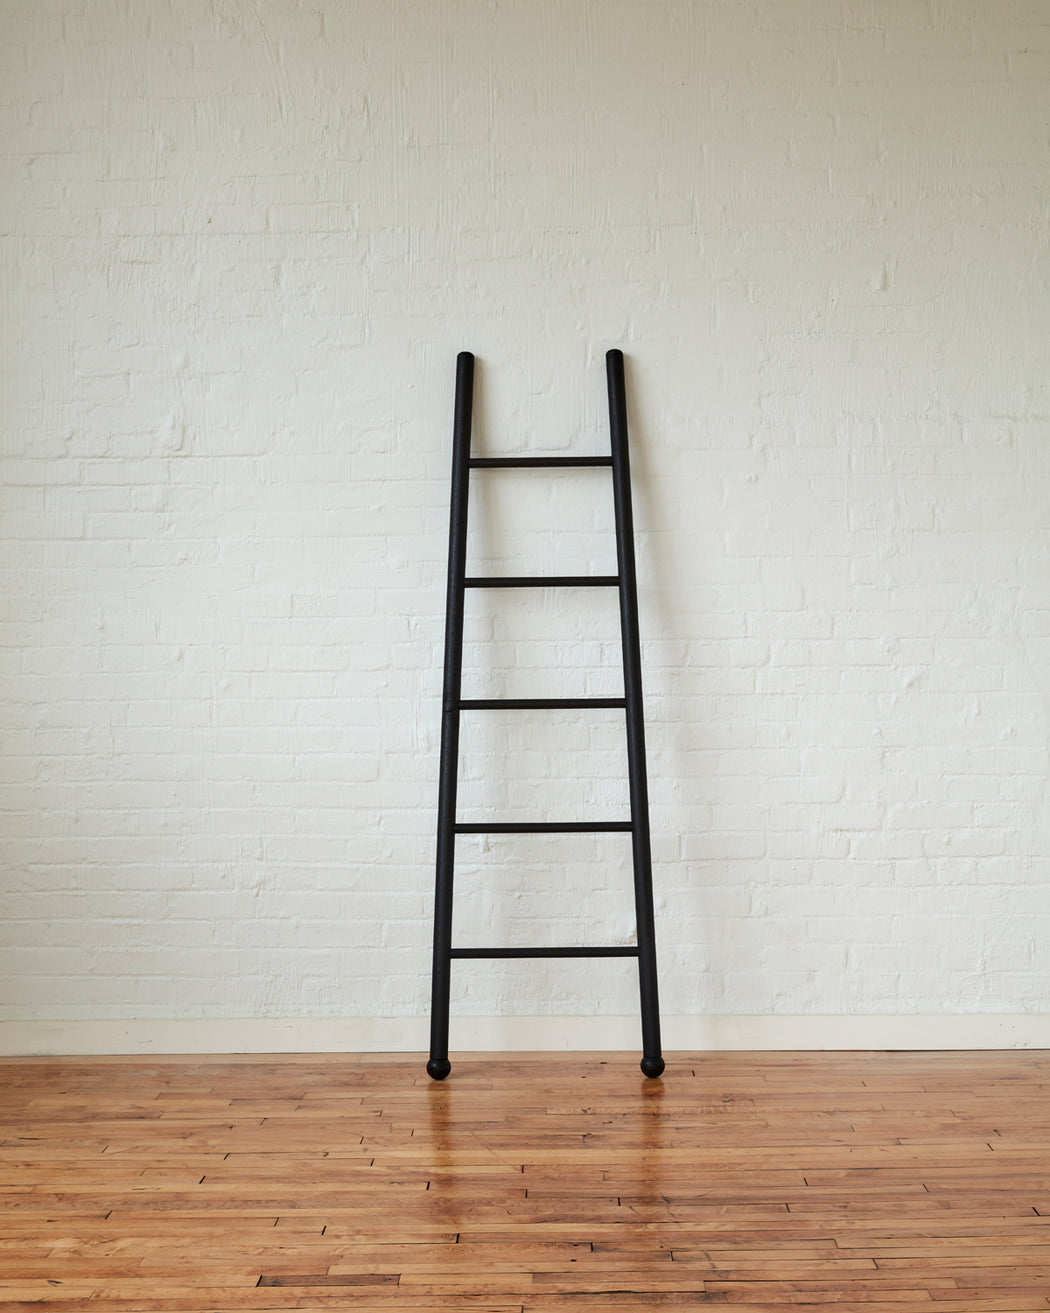 BLACK LADDERS FOR DECORATION -TOWELS AND BLANKETS - LOSTINE